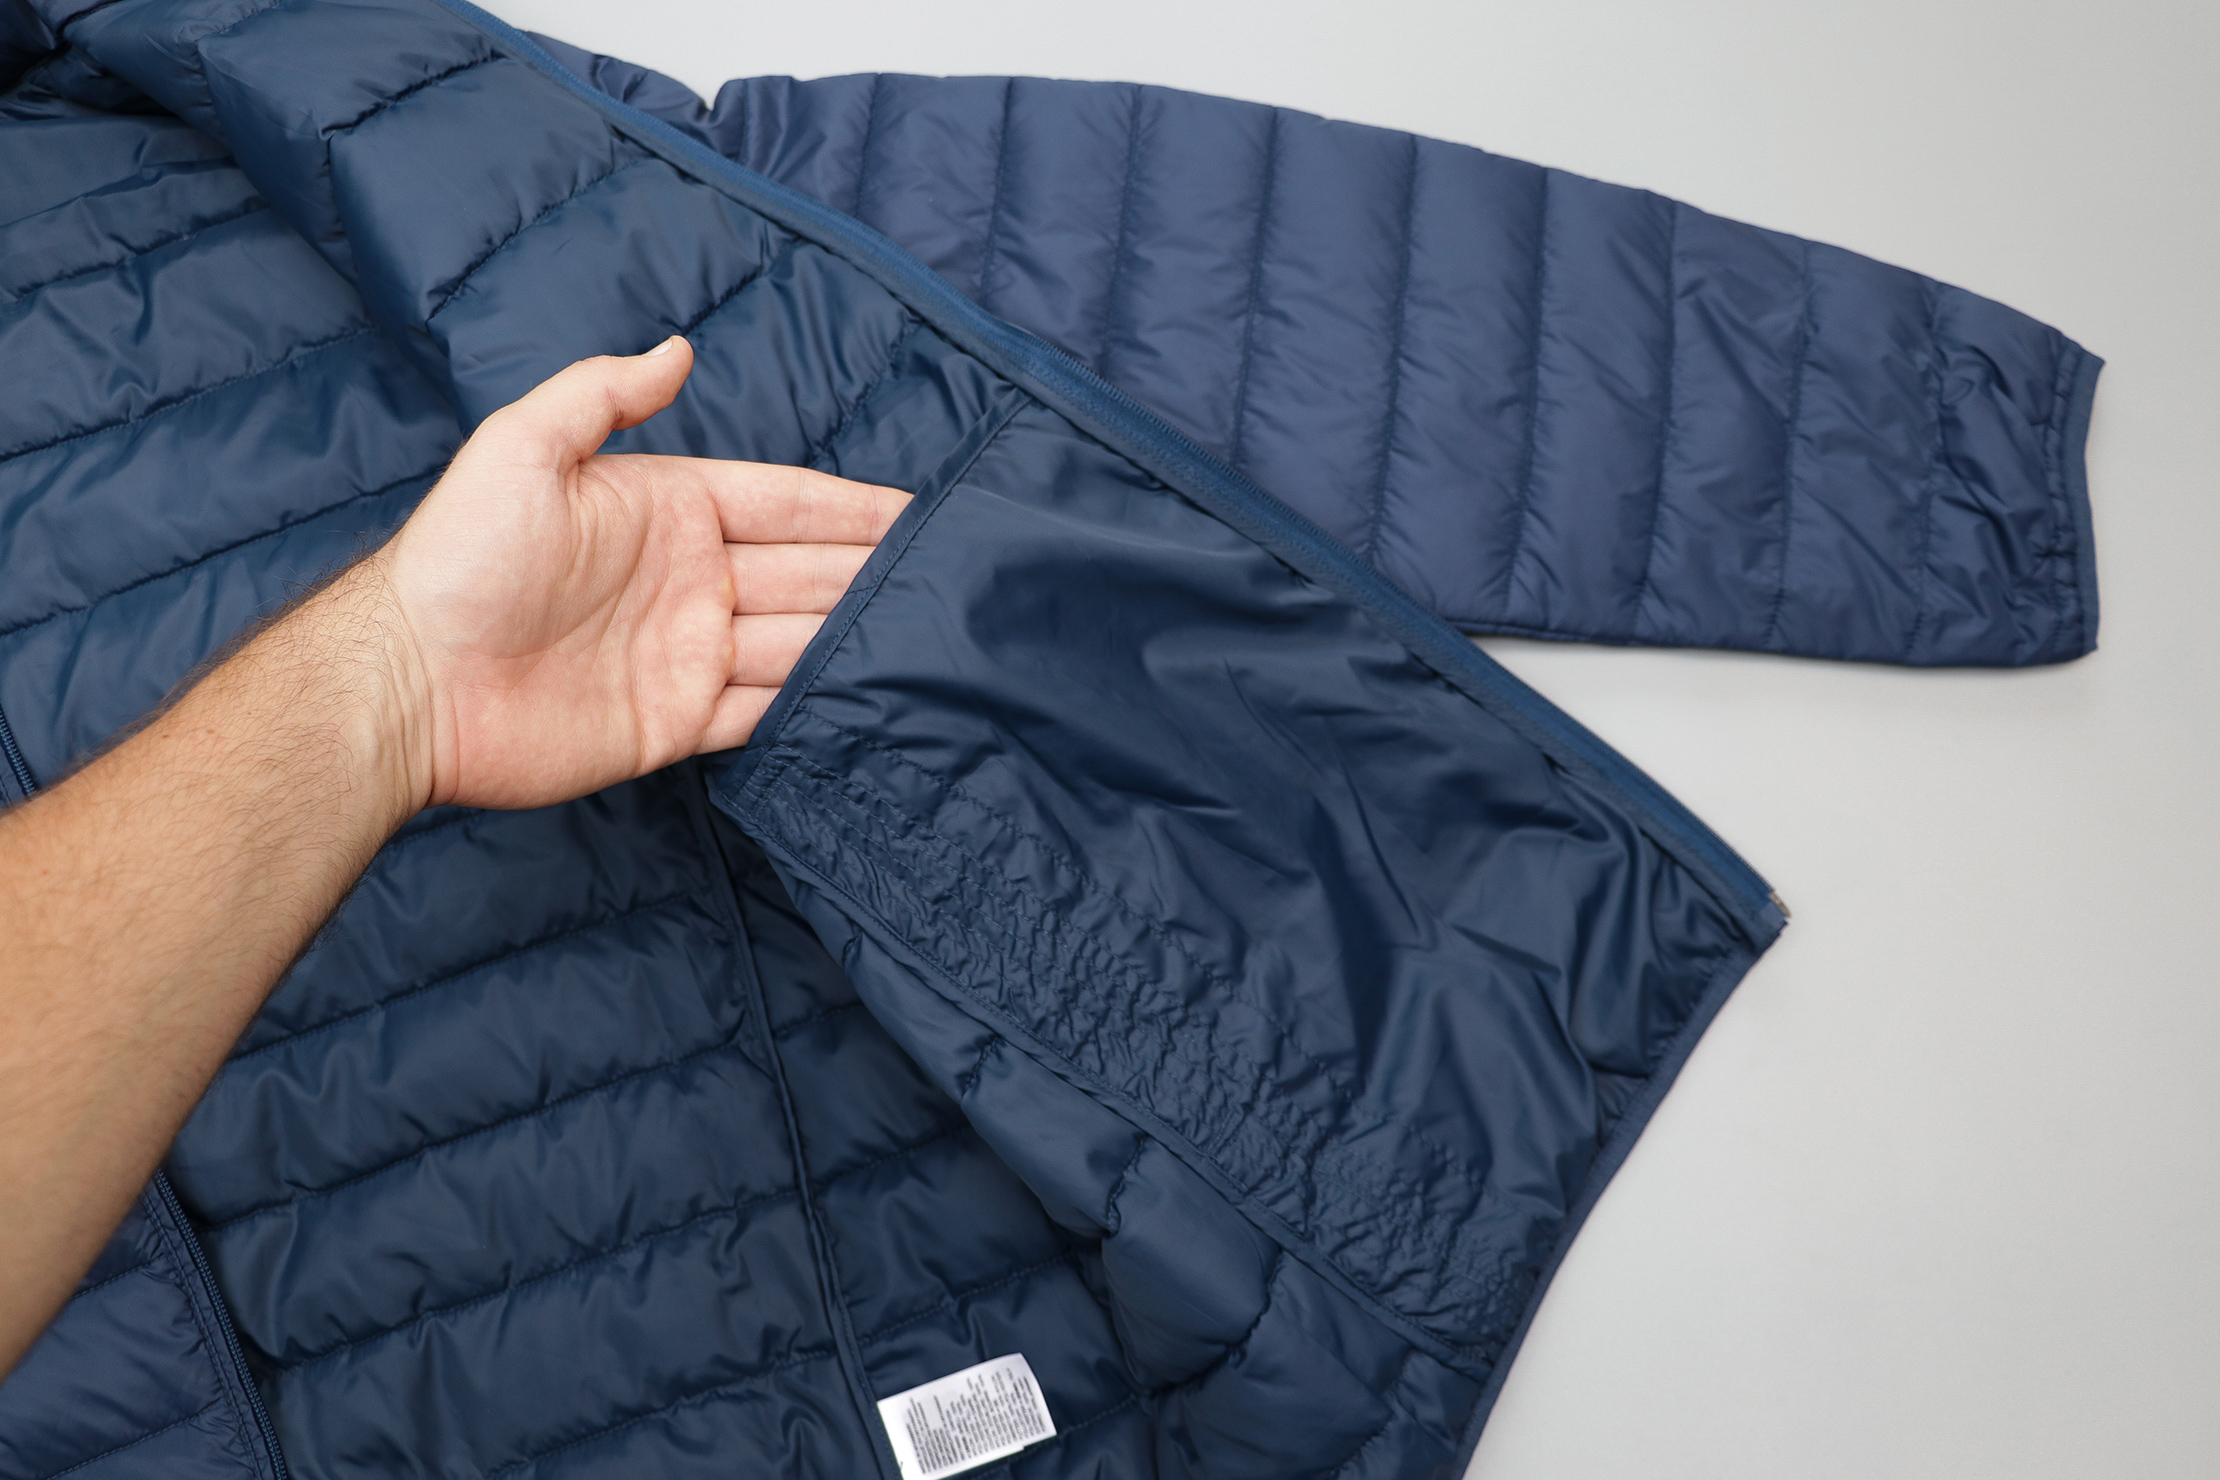 Amazon Essentials Packable Puffer Jacket Interior Pocket